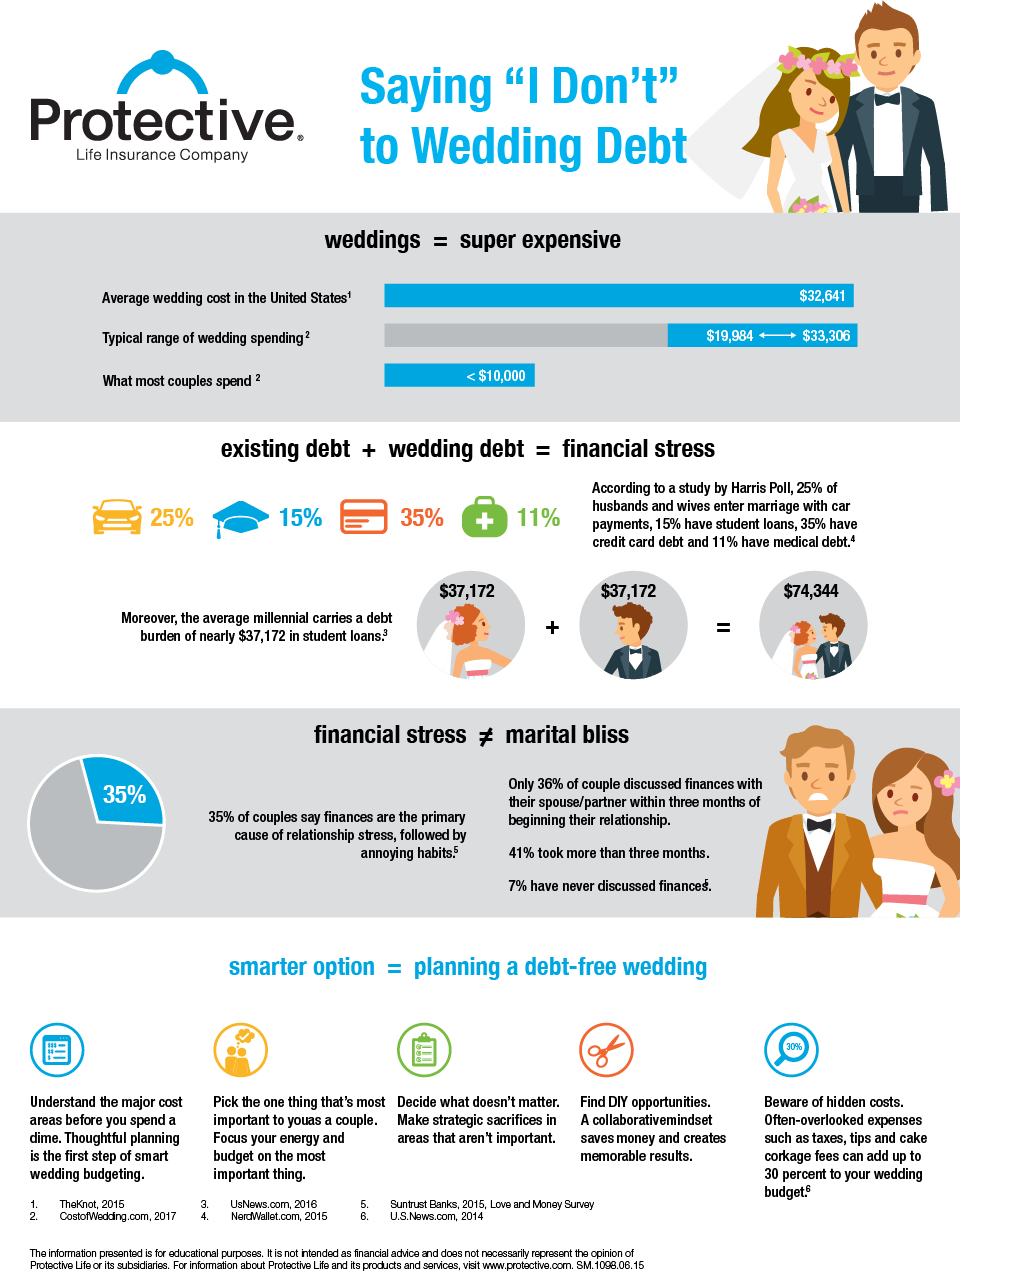 This infographic explores the costs of a wedding and the financial stress married couples experience.